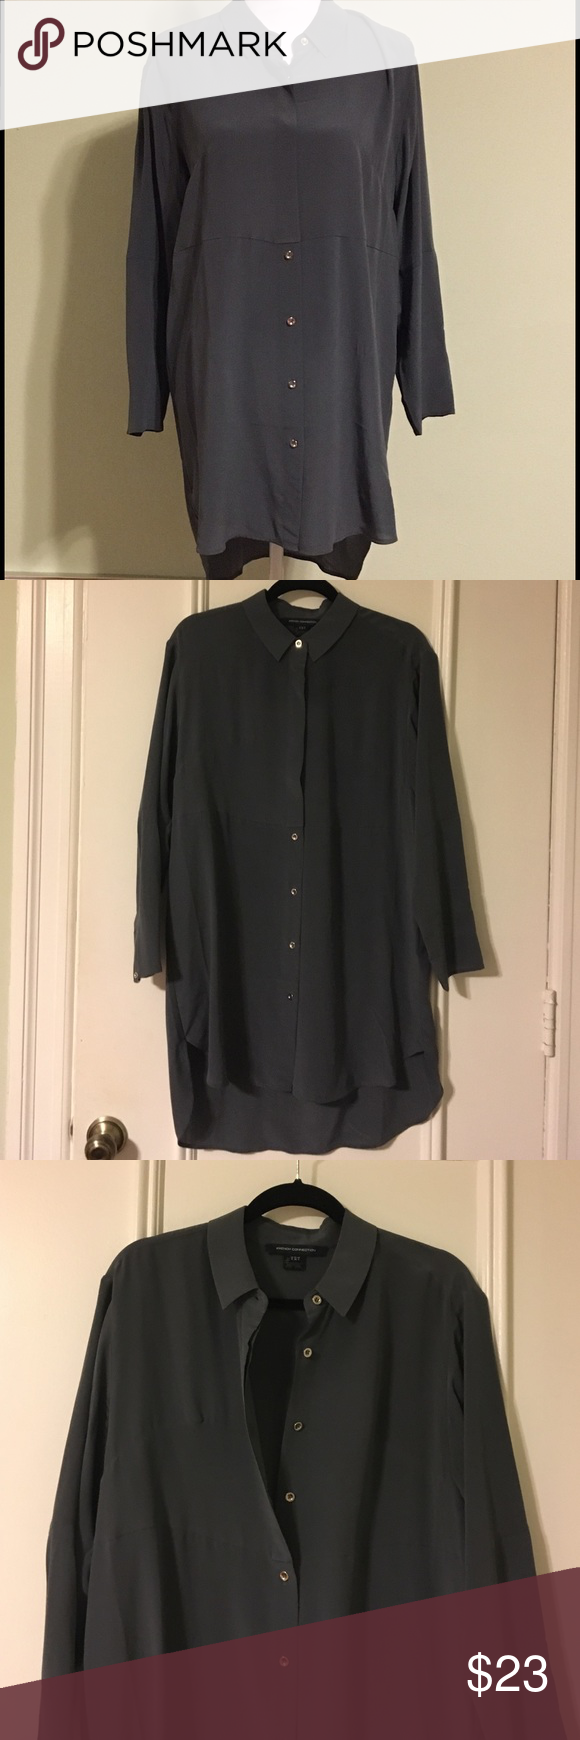 """French connection oversized button down blouse This beautiful button down oversized long blouse is by French connection. 100% silk. Cold wash only. Could be used as light jacket or dress. 21"""" pit to pit, 42"""" shoulder to hem (front), 36"""" from shoulder to hem (back). Worn once. Few spot stains (picture #4) front bottom area but hard to notify. French Connection Tops Blouses"""